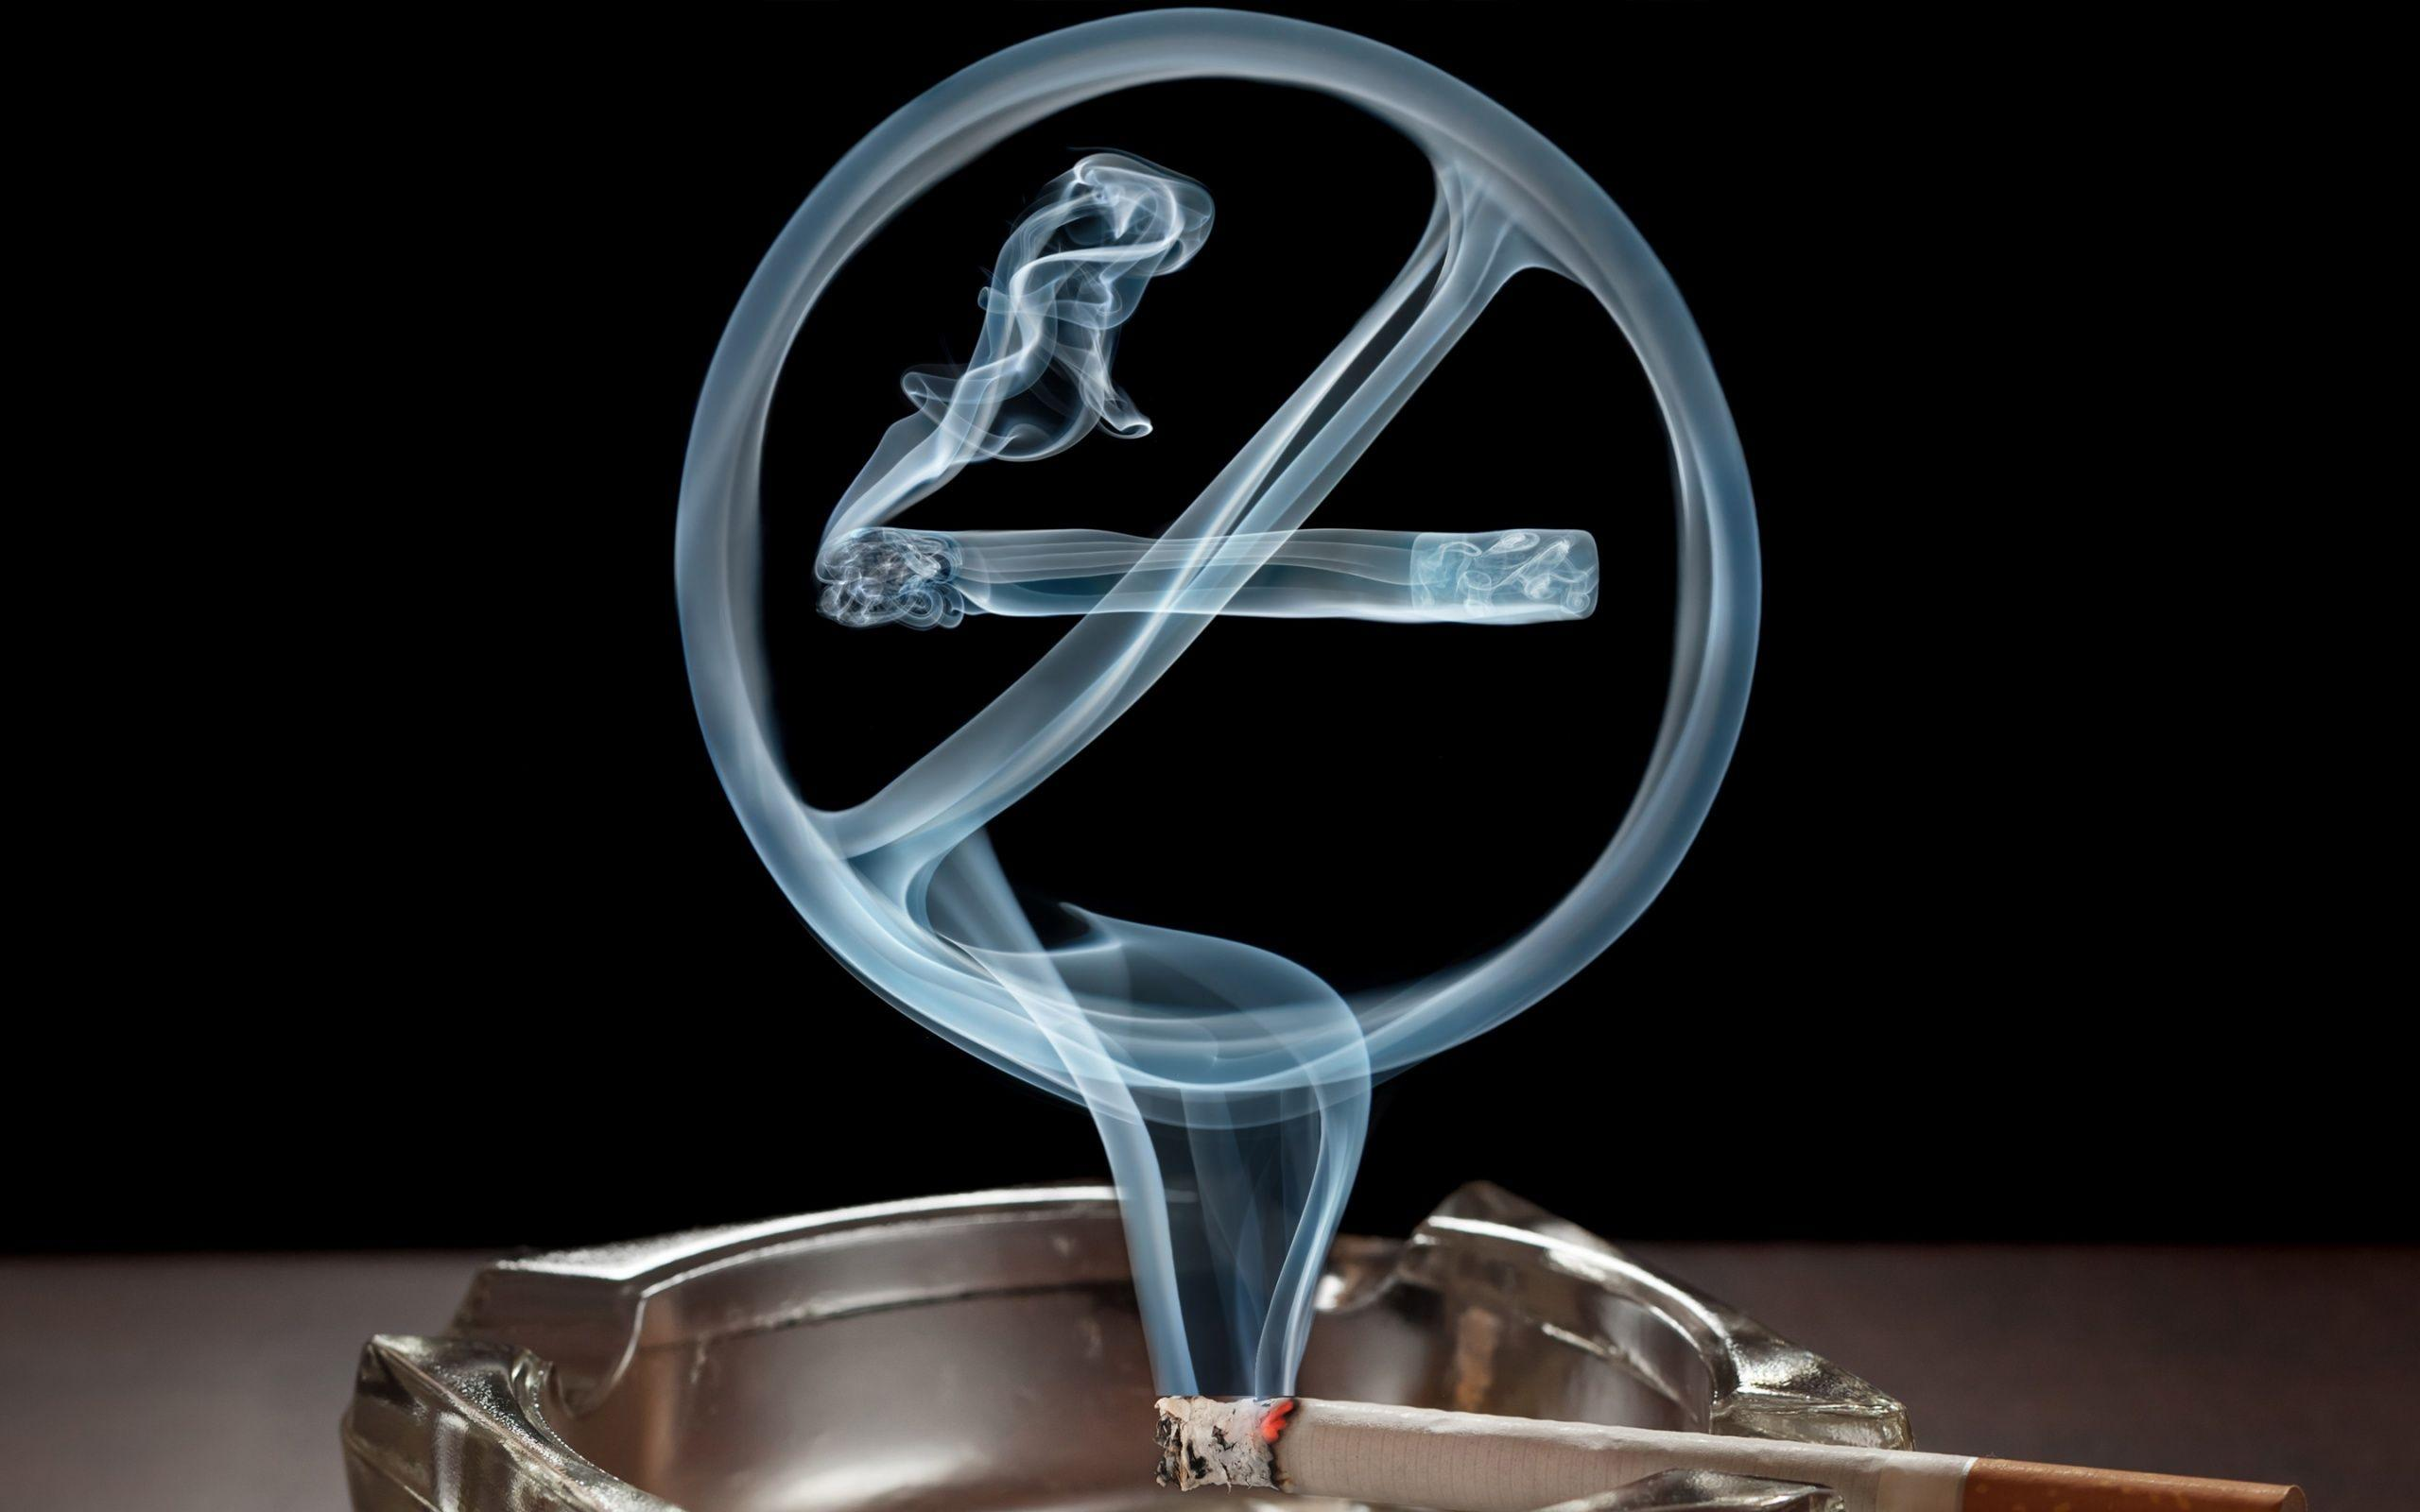 Best 68 No Smoking Wallpaper on HipWallpaper Smoking Wallpapers 2560x1600